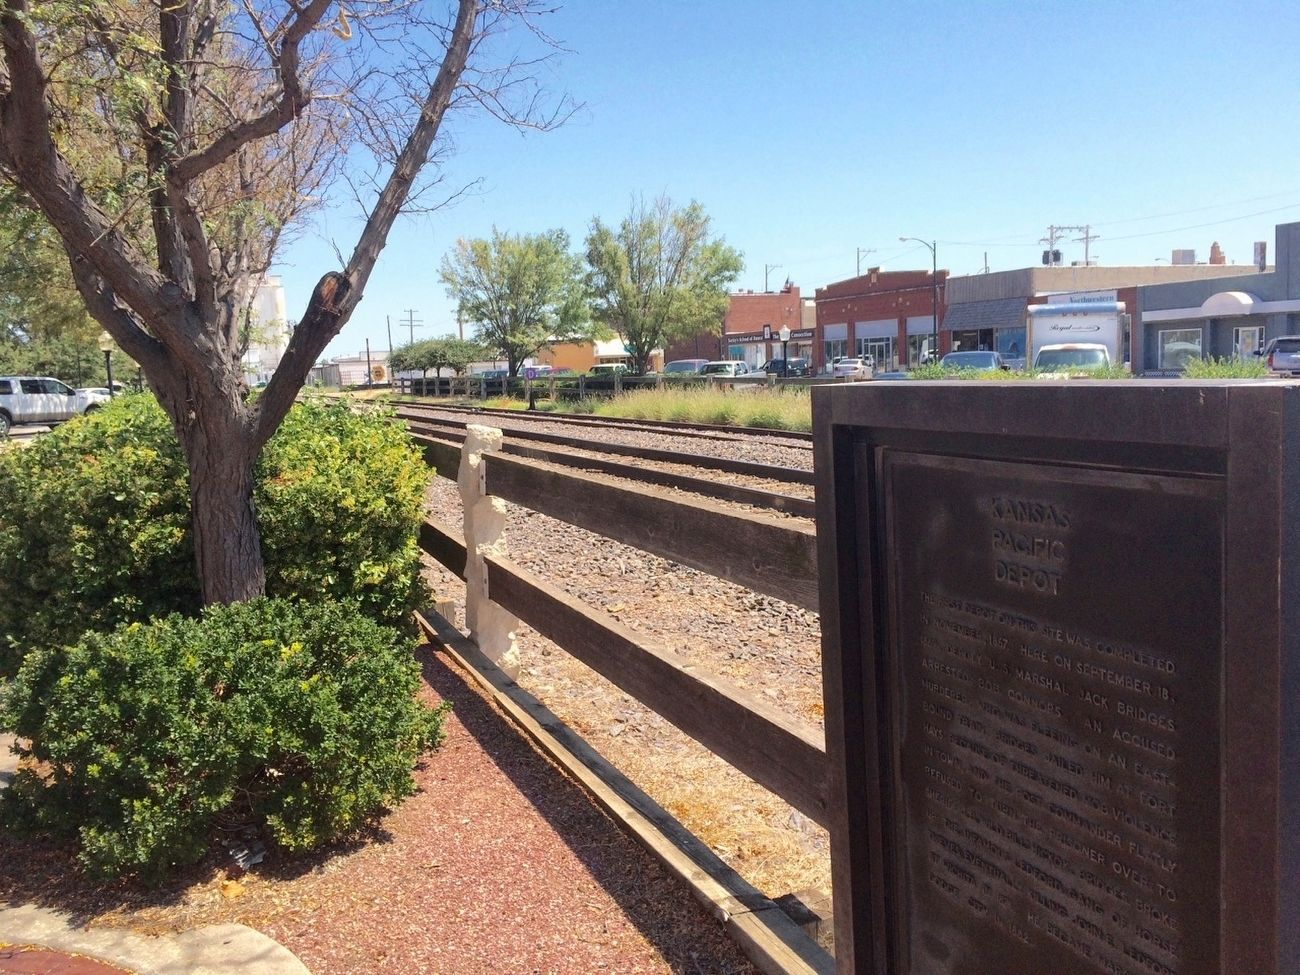 Kansas Pacific Depot Marker in front of train tracks in Union Pacific Plaza. image. Click for full size.